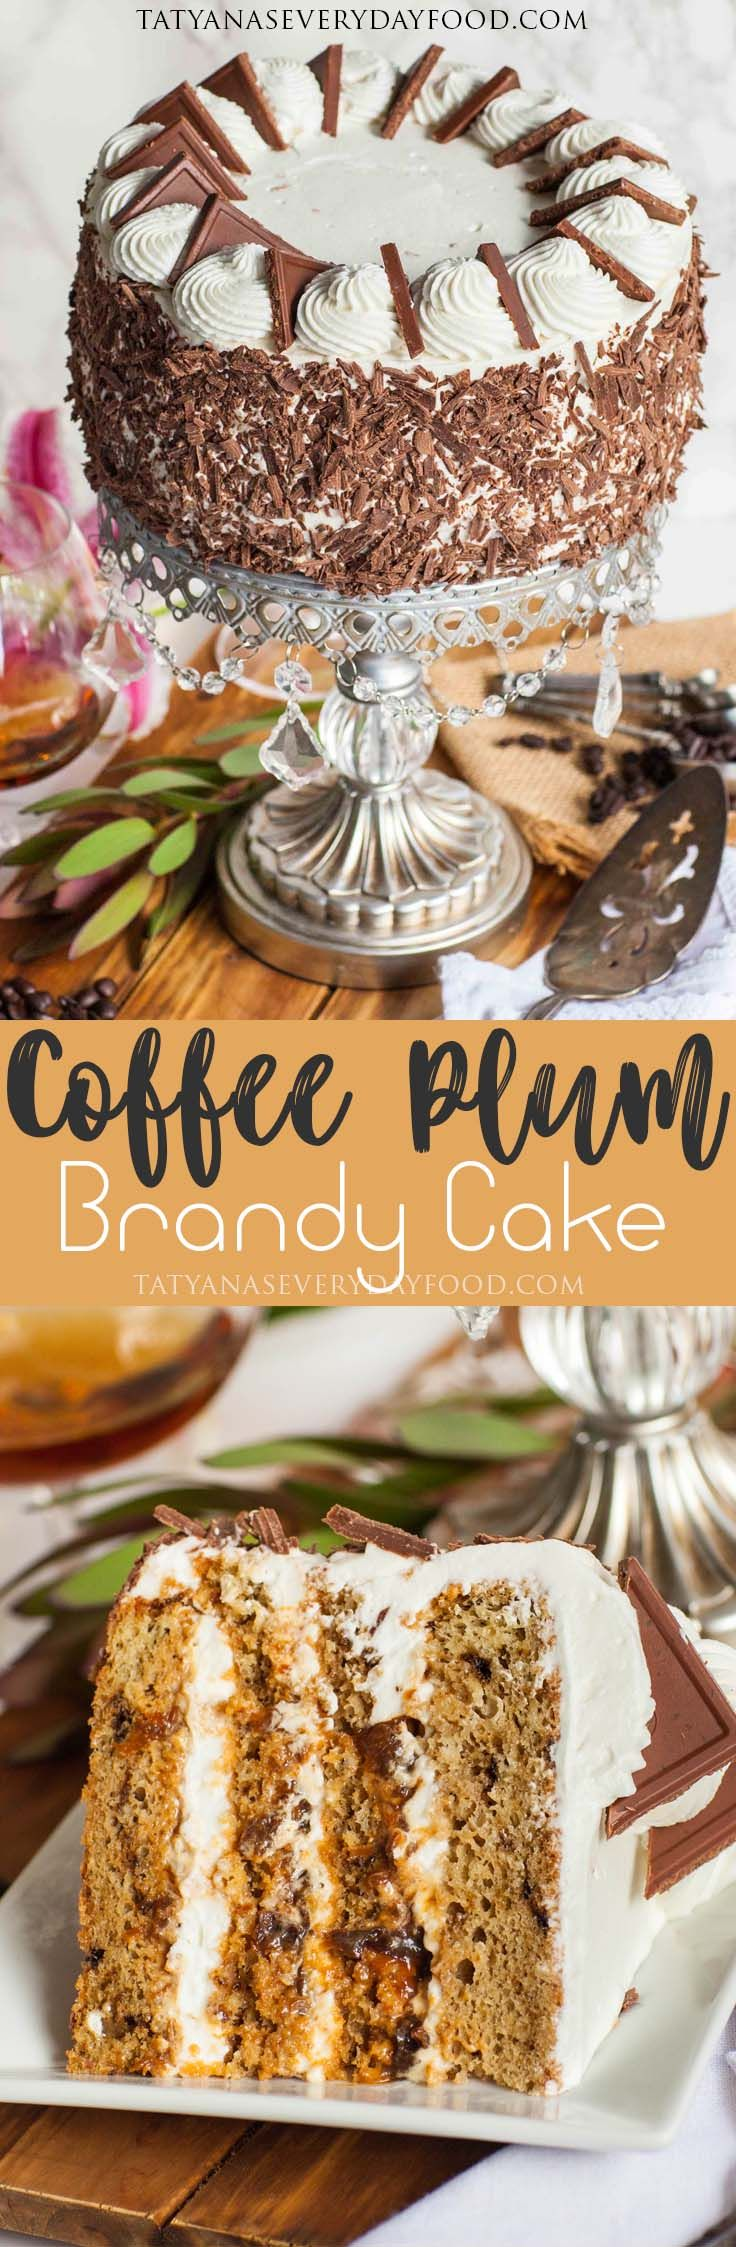 Coffee Prune Cake With Brandy - Tatyanas Everyday Food